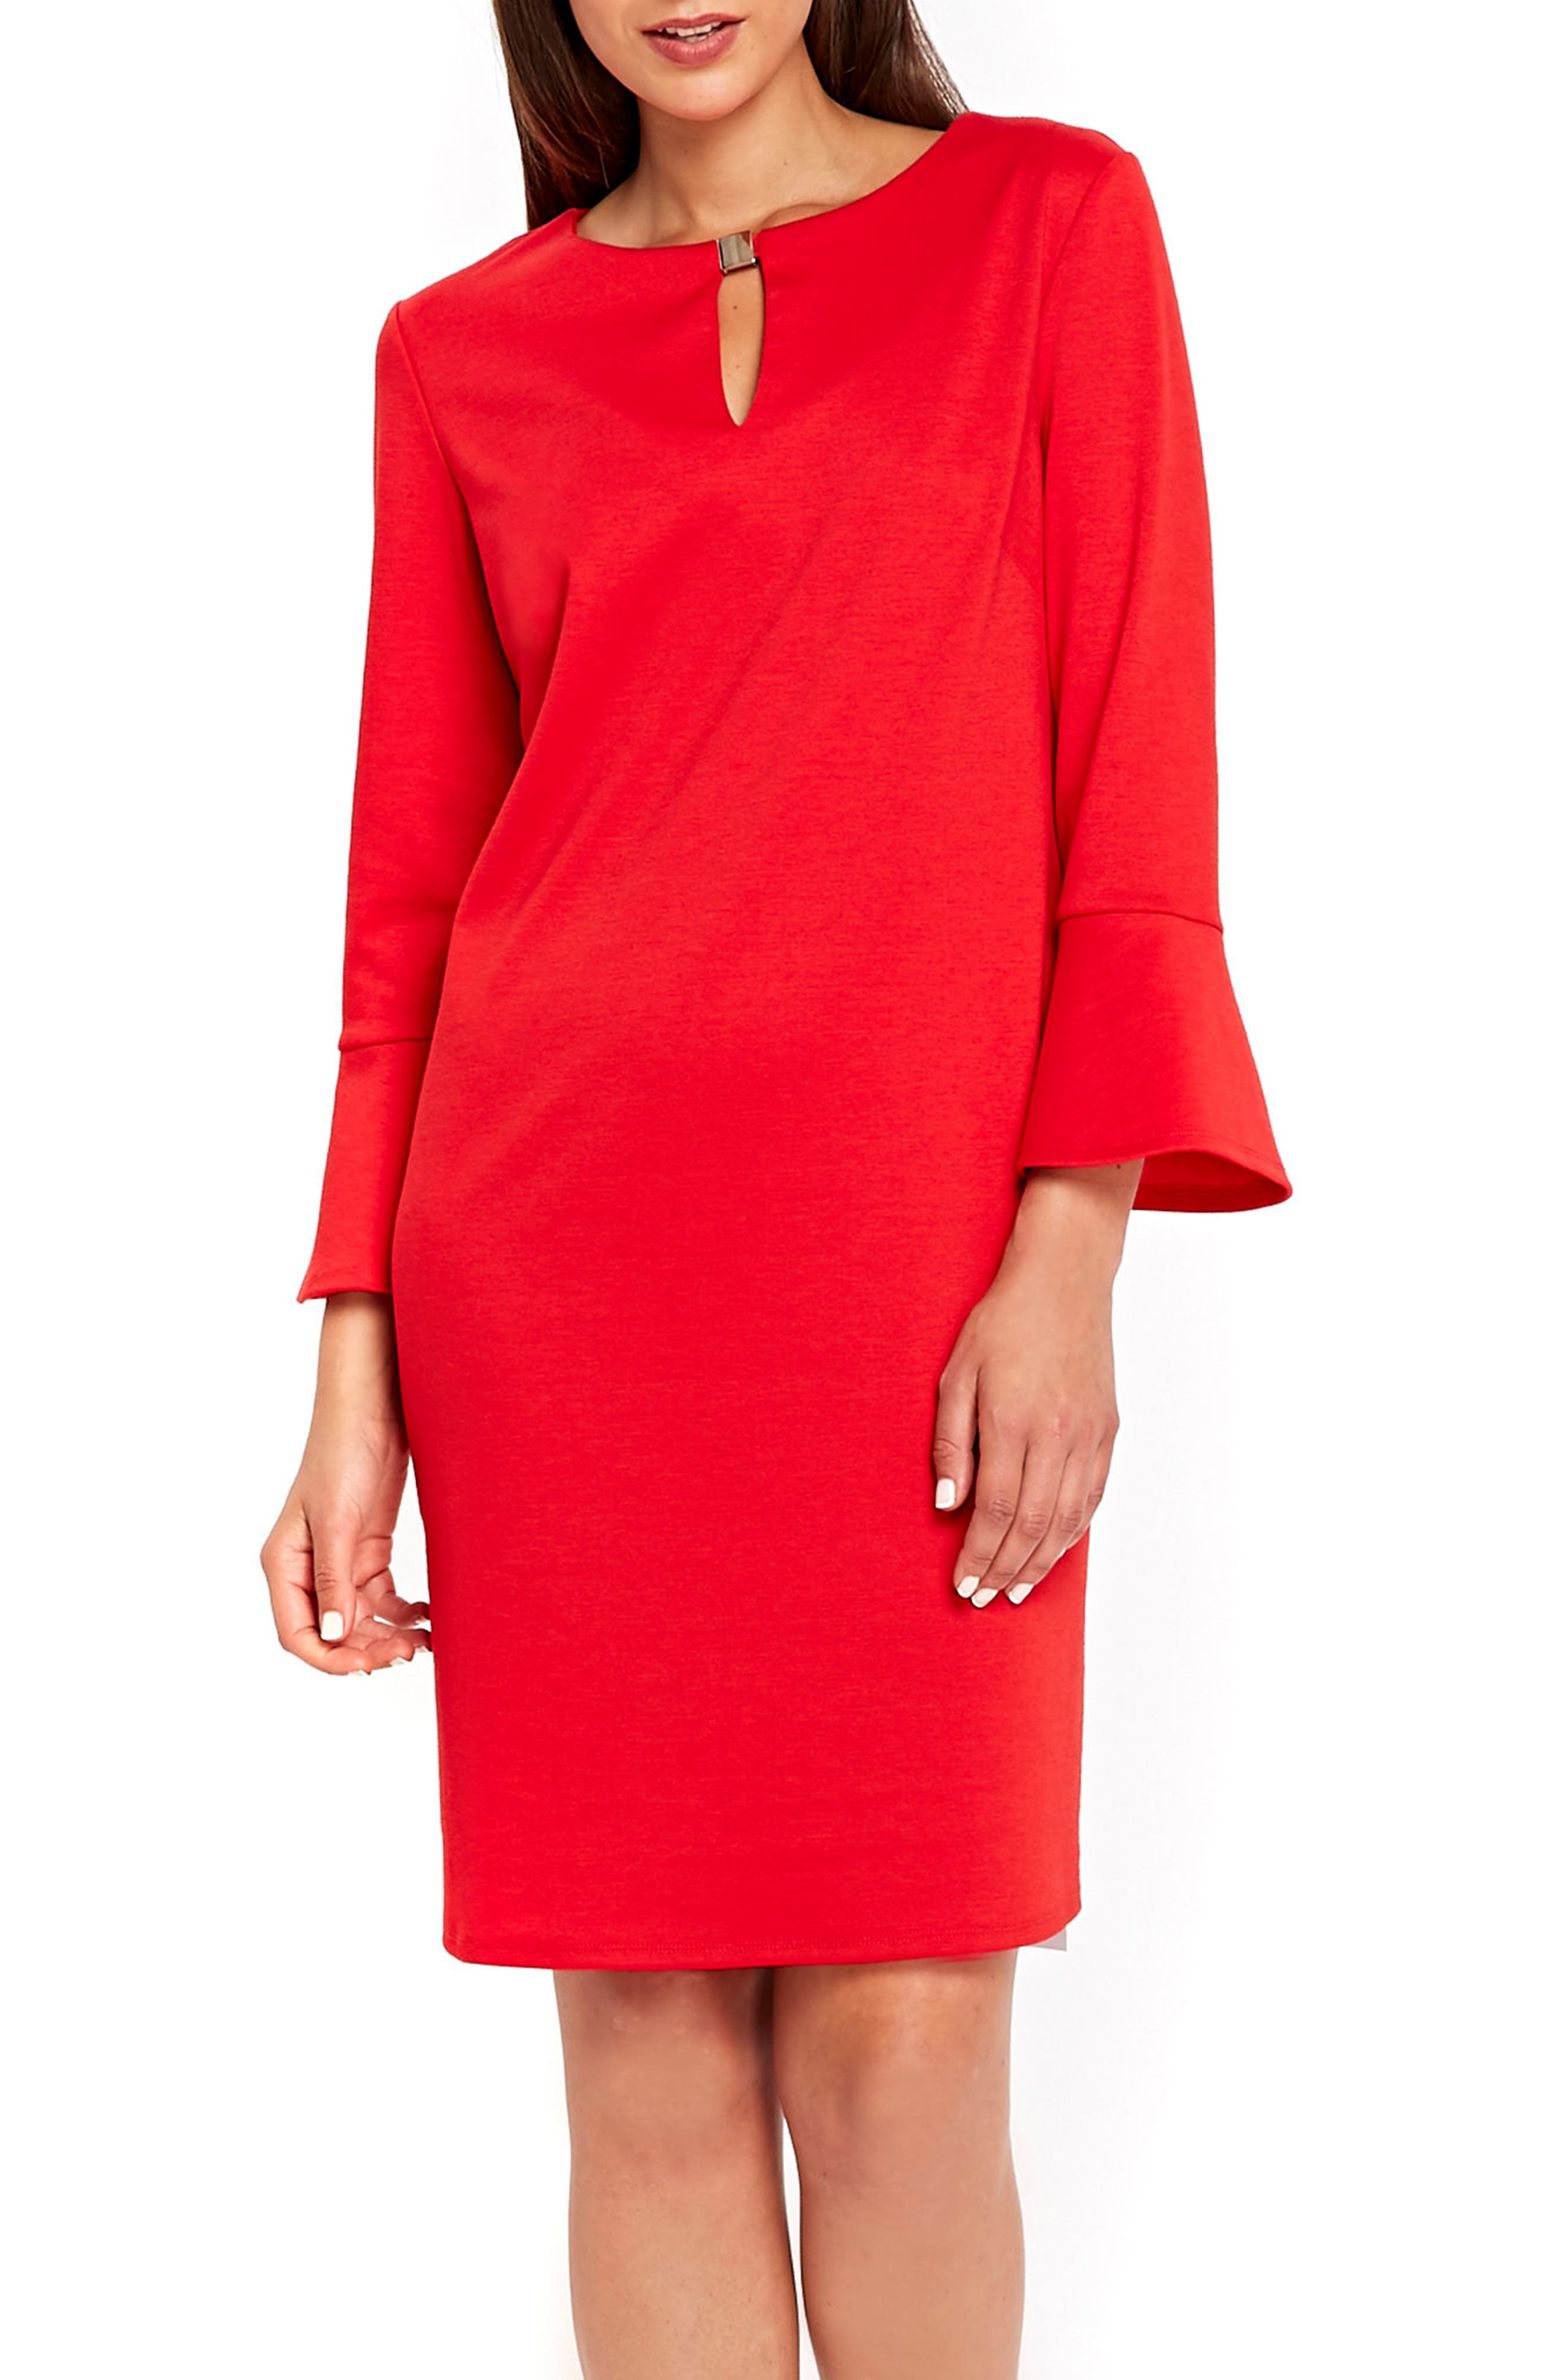 Bell Sleeve Keyhole Neck Dress,                         Main,                         color, Red